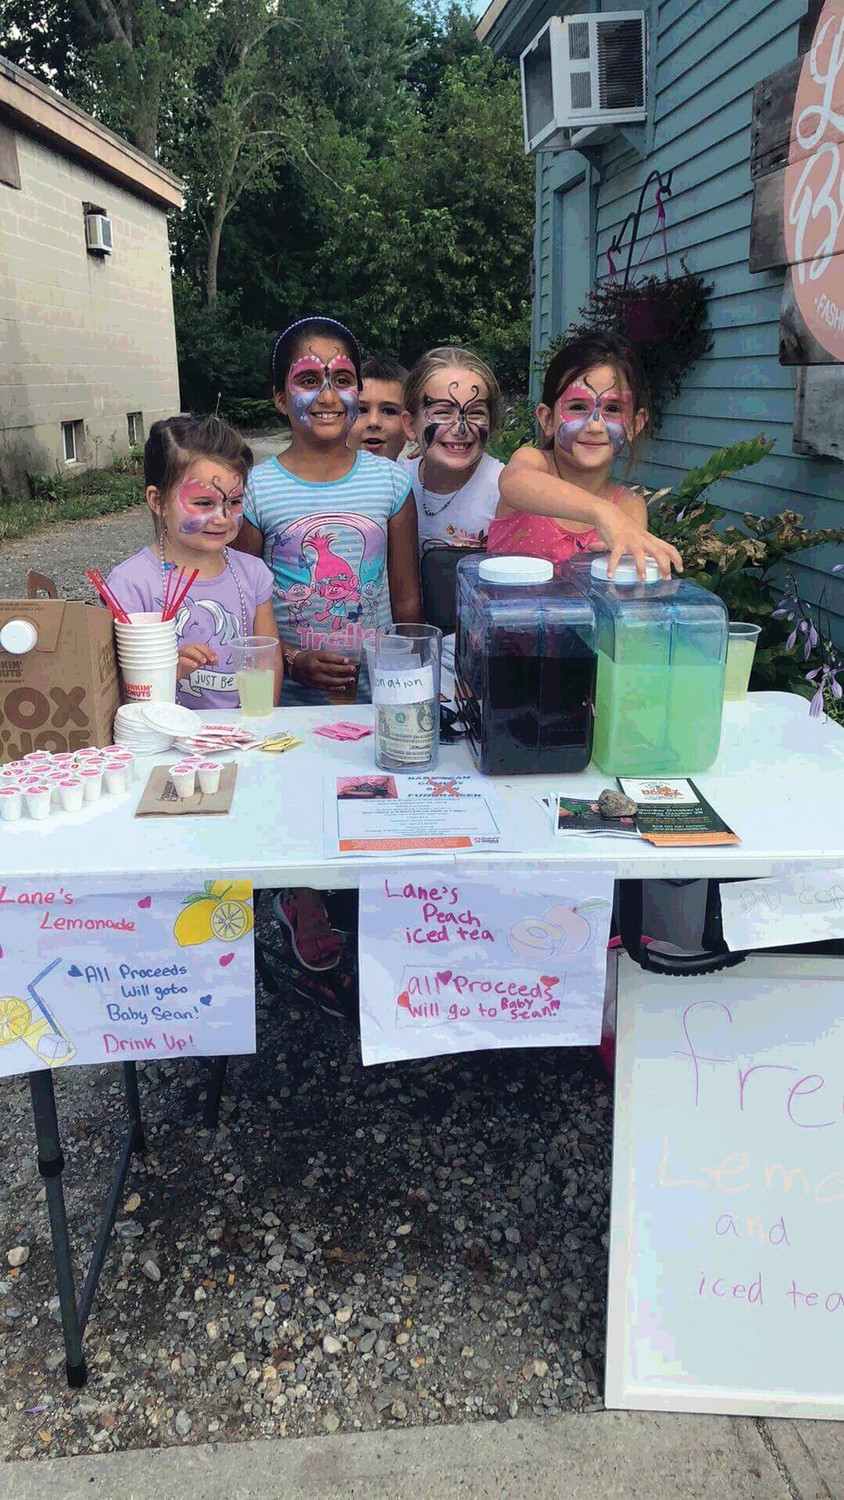 LEMONADE STAND: Pictured is the Lane's Lemonade Stand and Peach Iced Tea that was set up during the fundraiser event in the village Saturday. All proceeds went to Baby Sean.